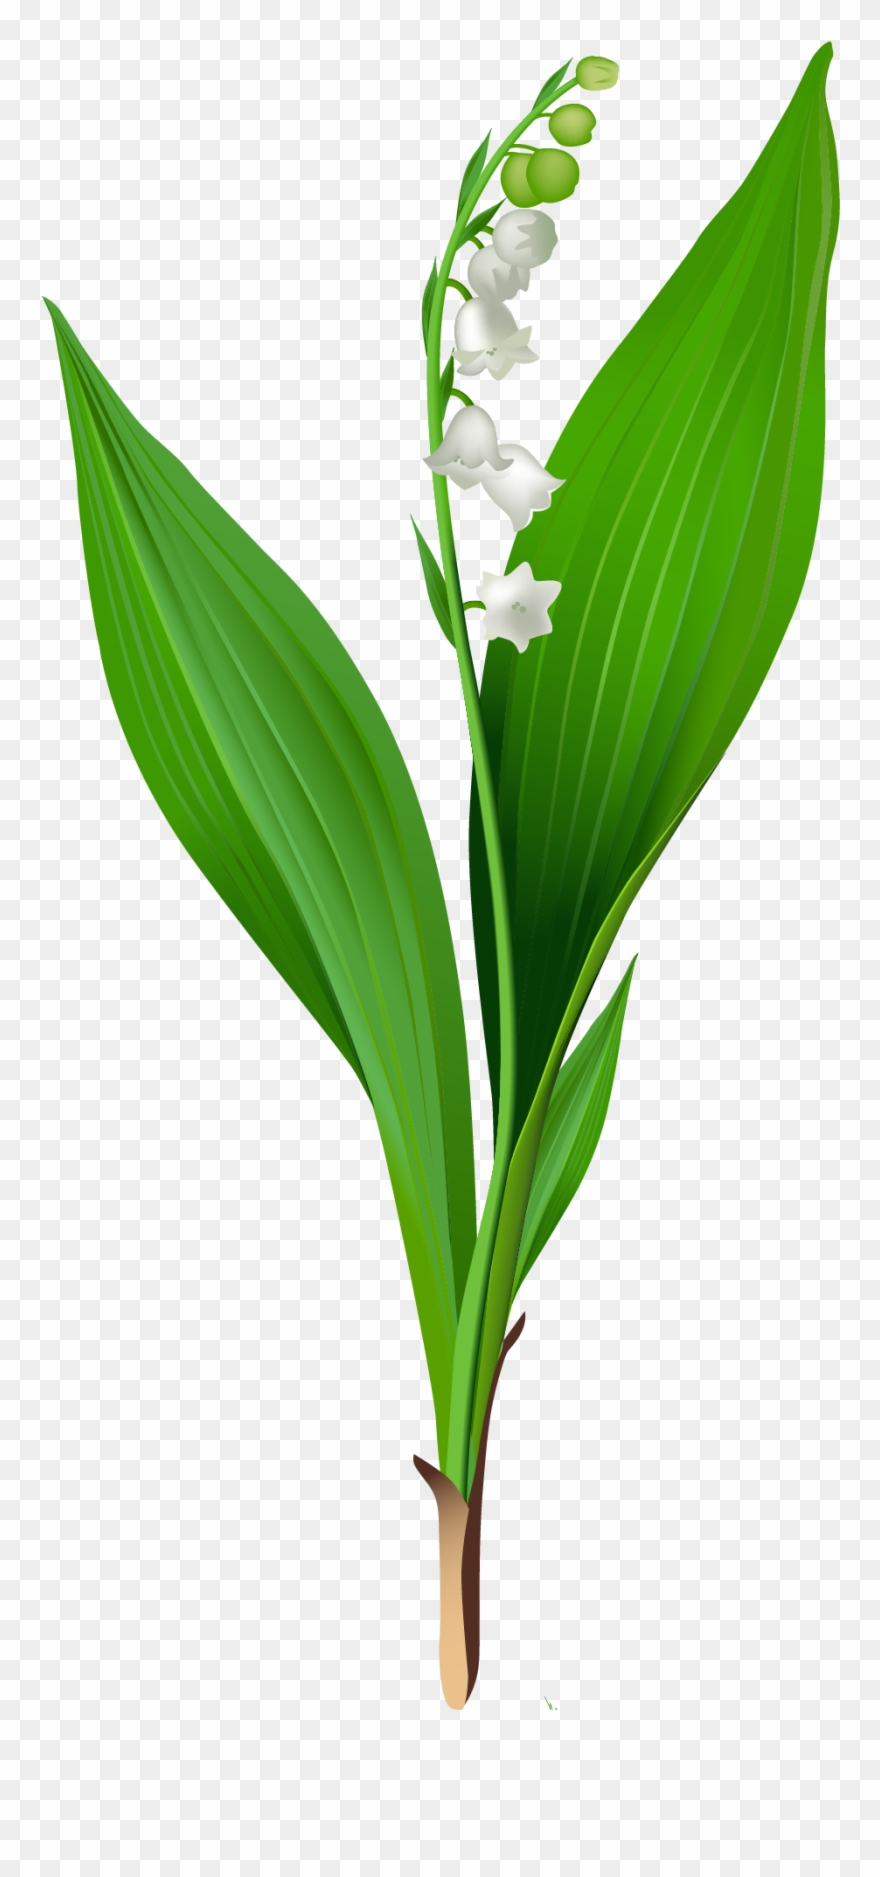 Flowers For > Lily Of The Valley Clip Art - Lily Of The Valley Clipart Transparent - Png Download